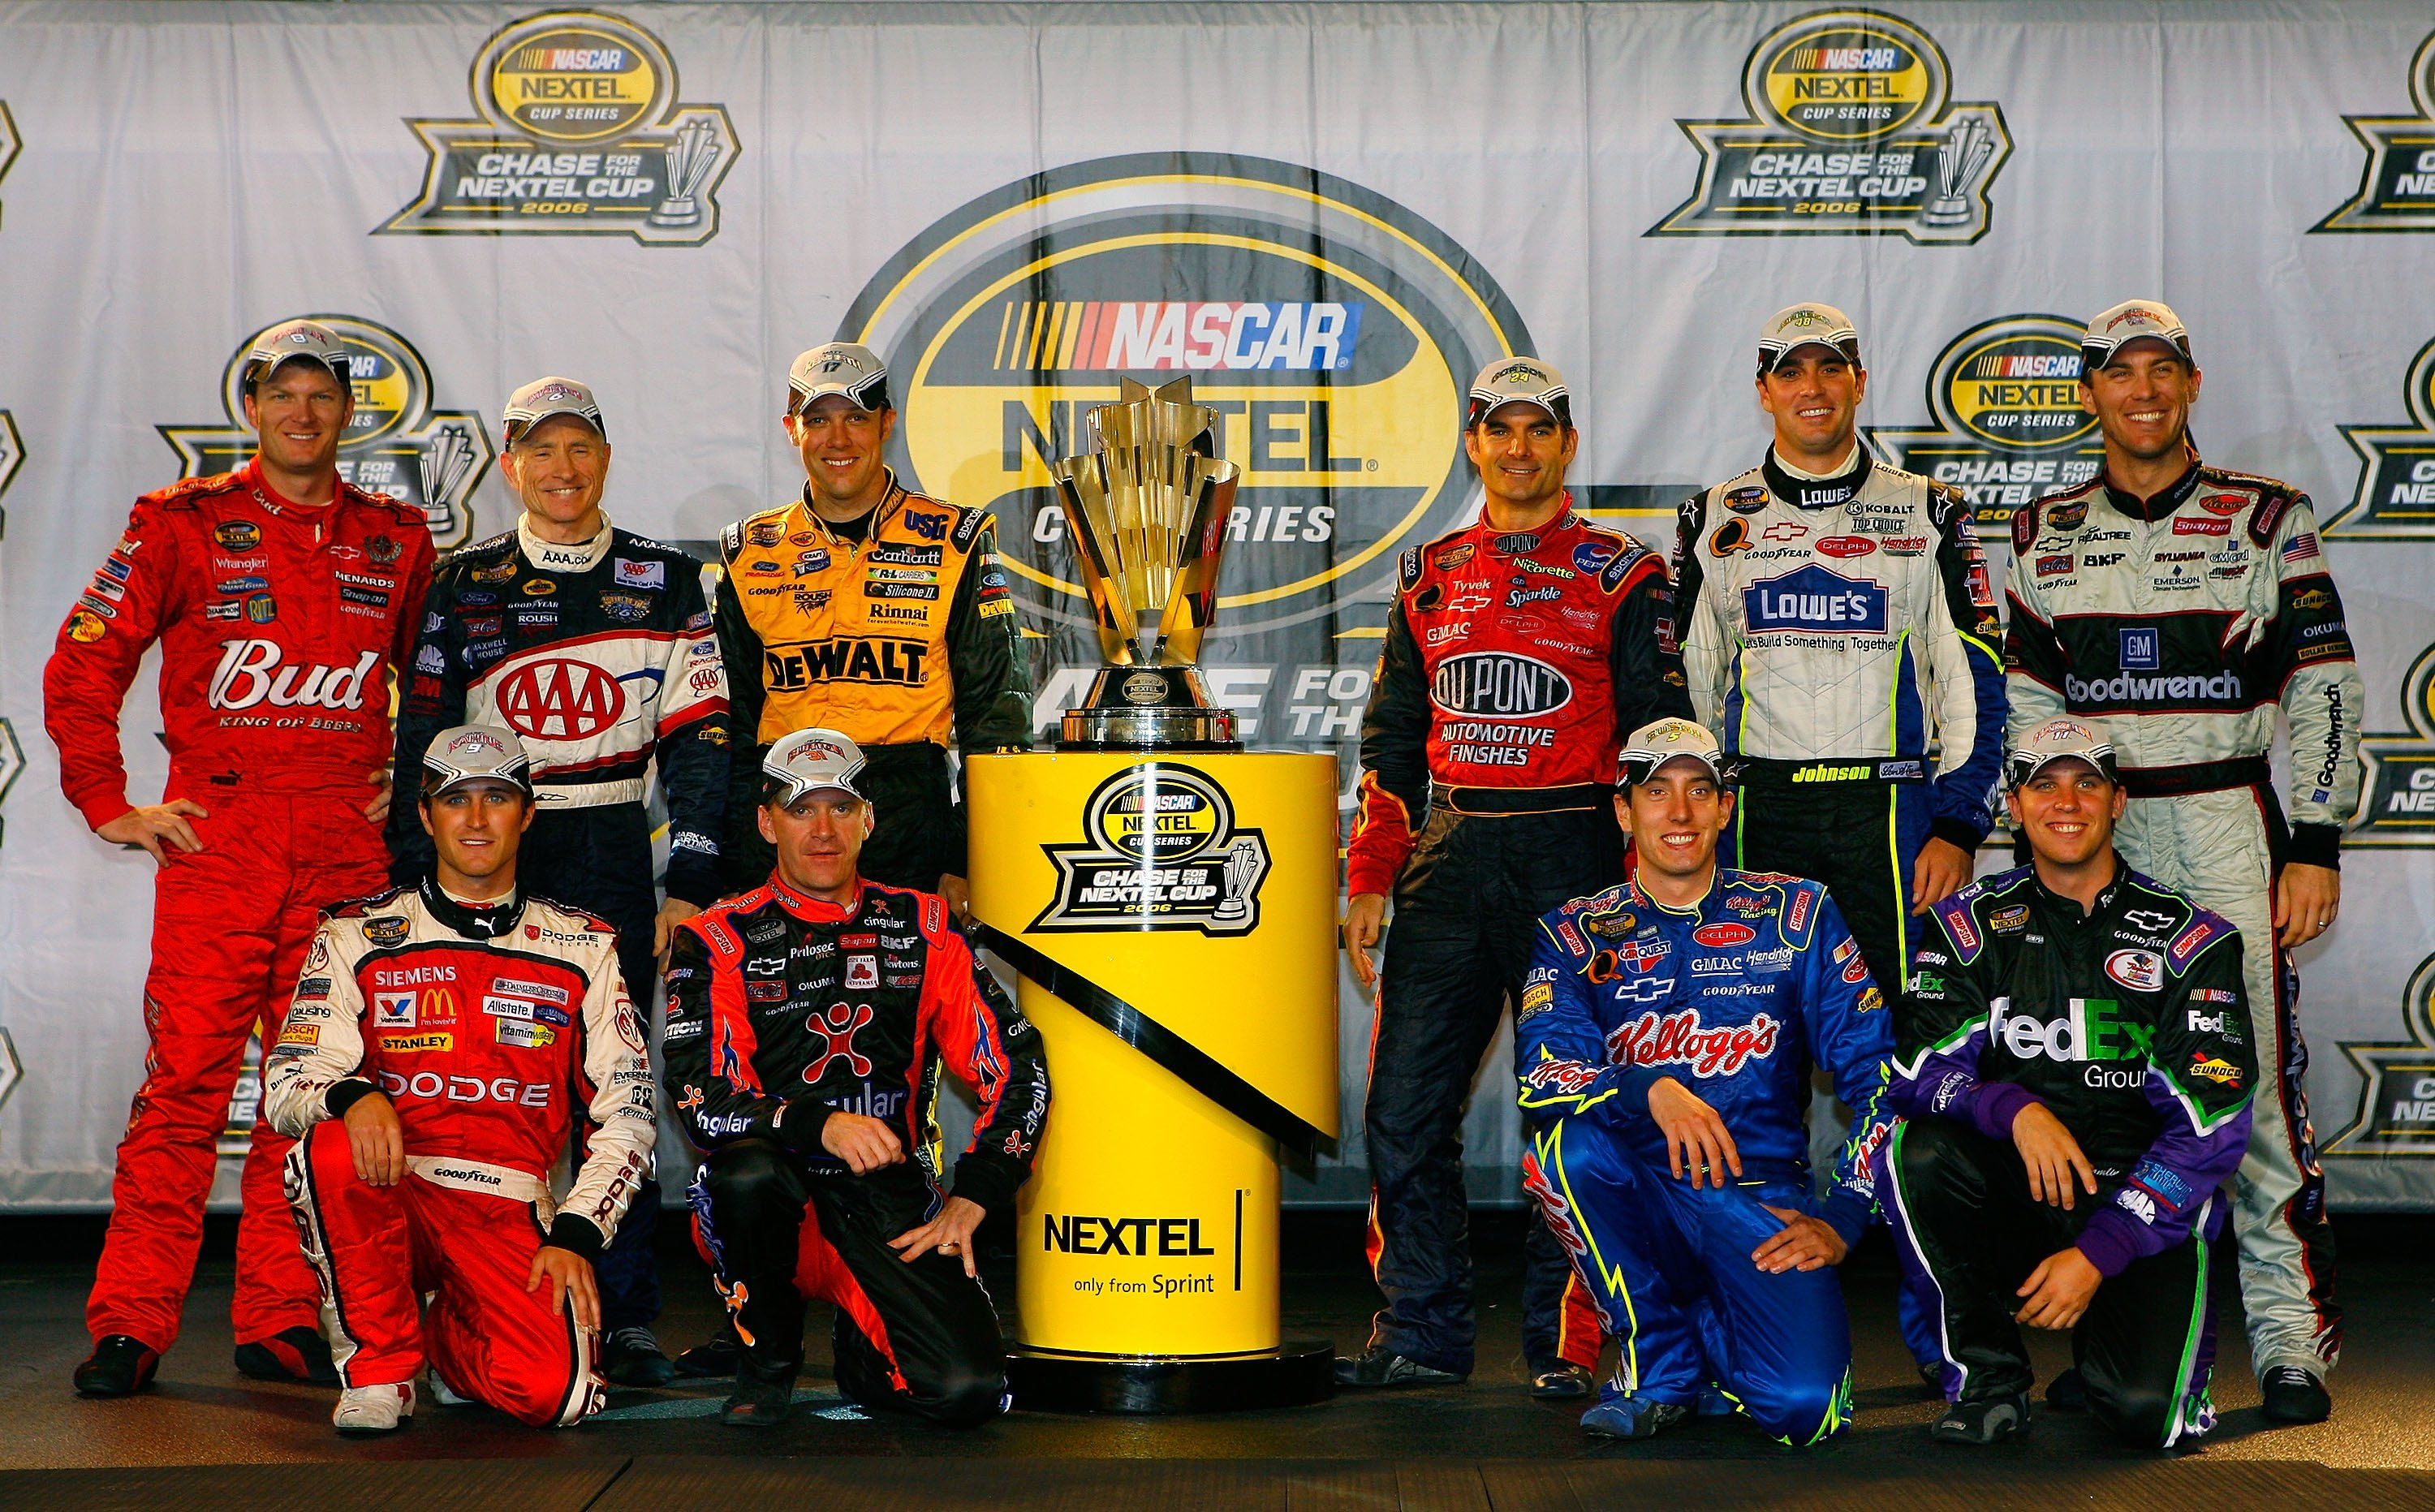 2006 Chase For The Cup Field